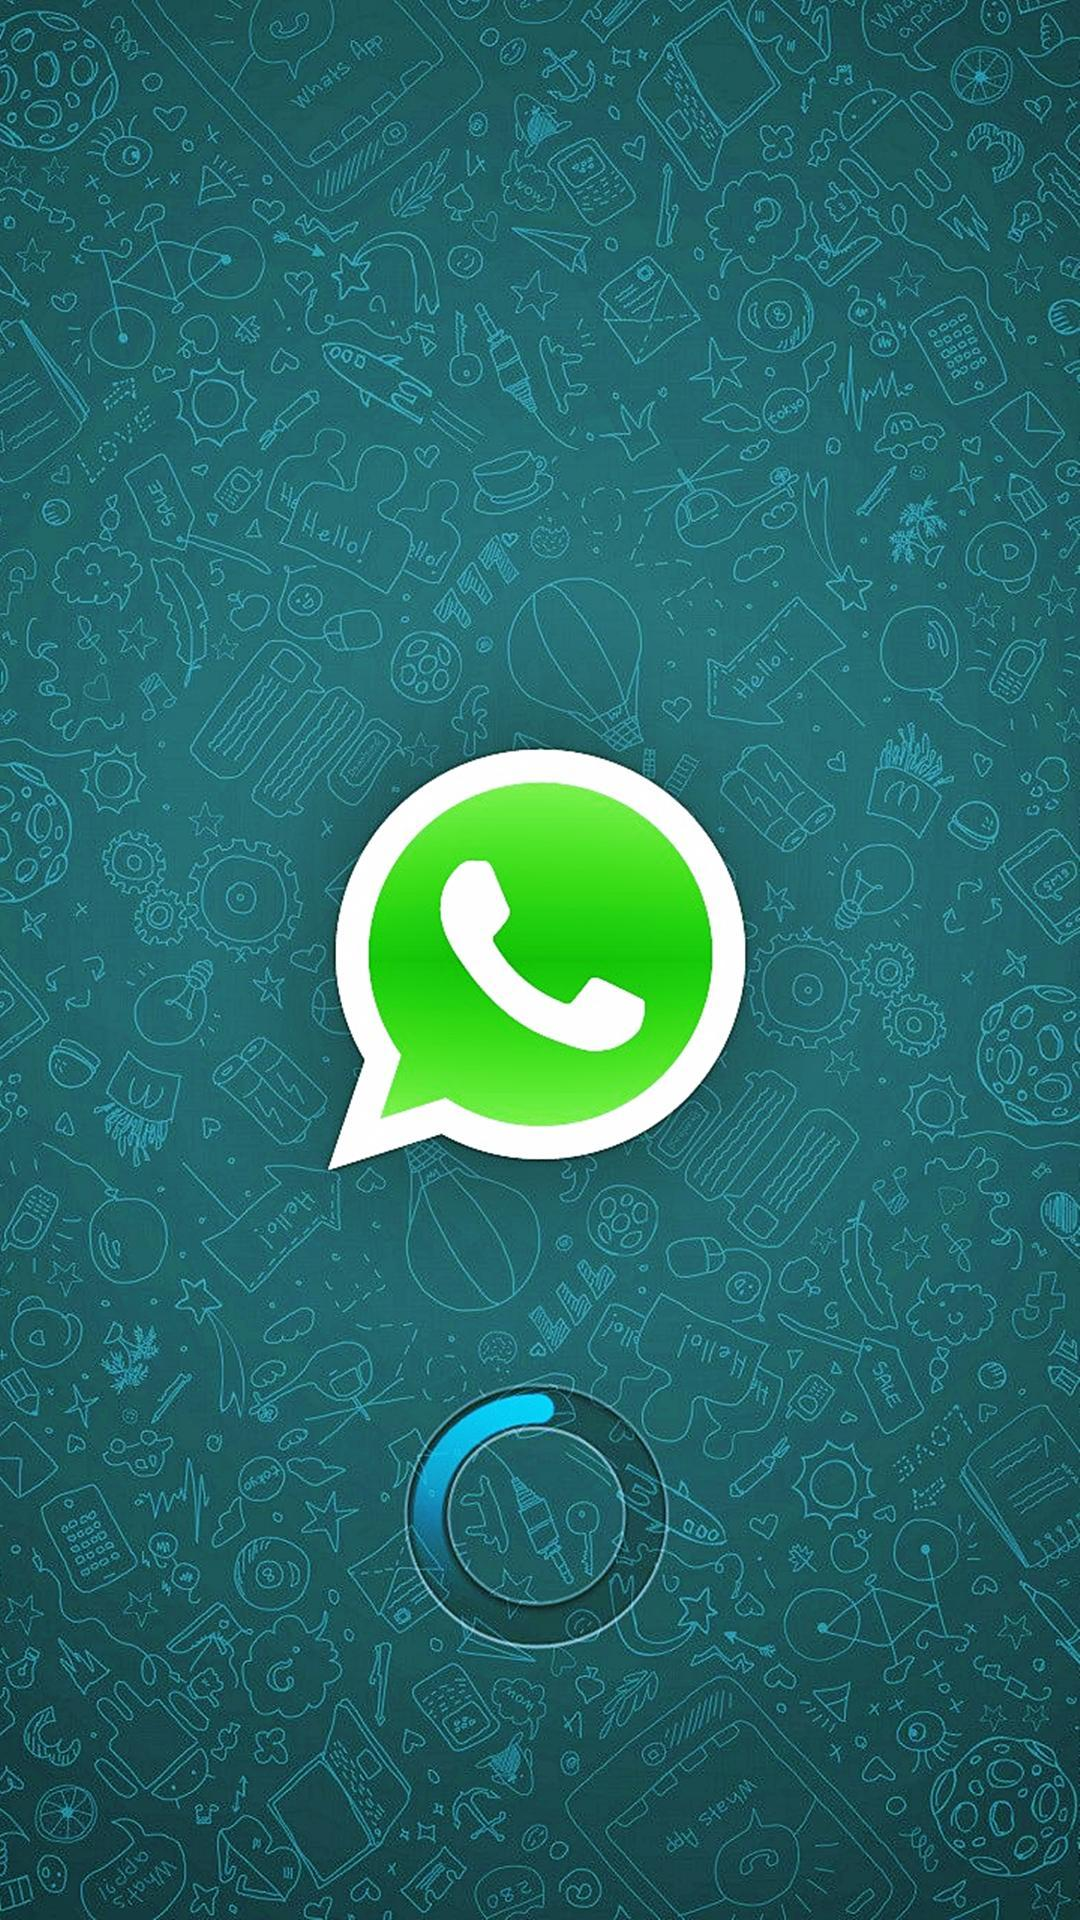 WhatsApp Minimal Backgrounds HD Wallpapers